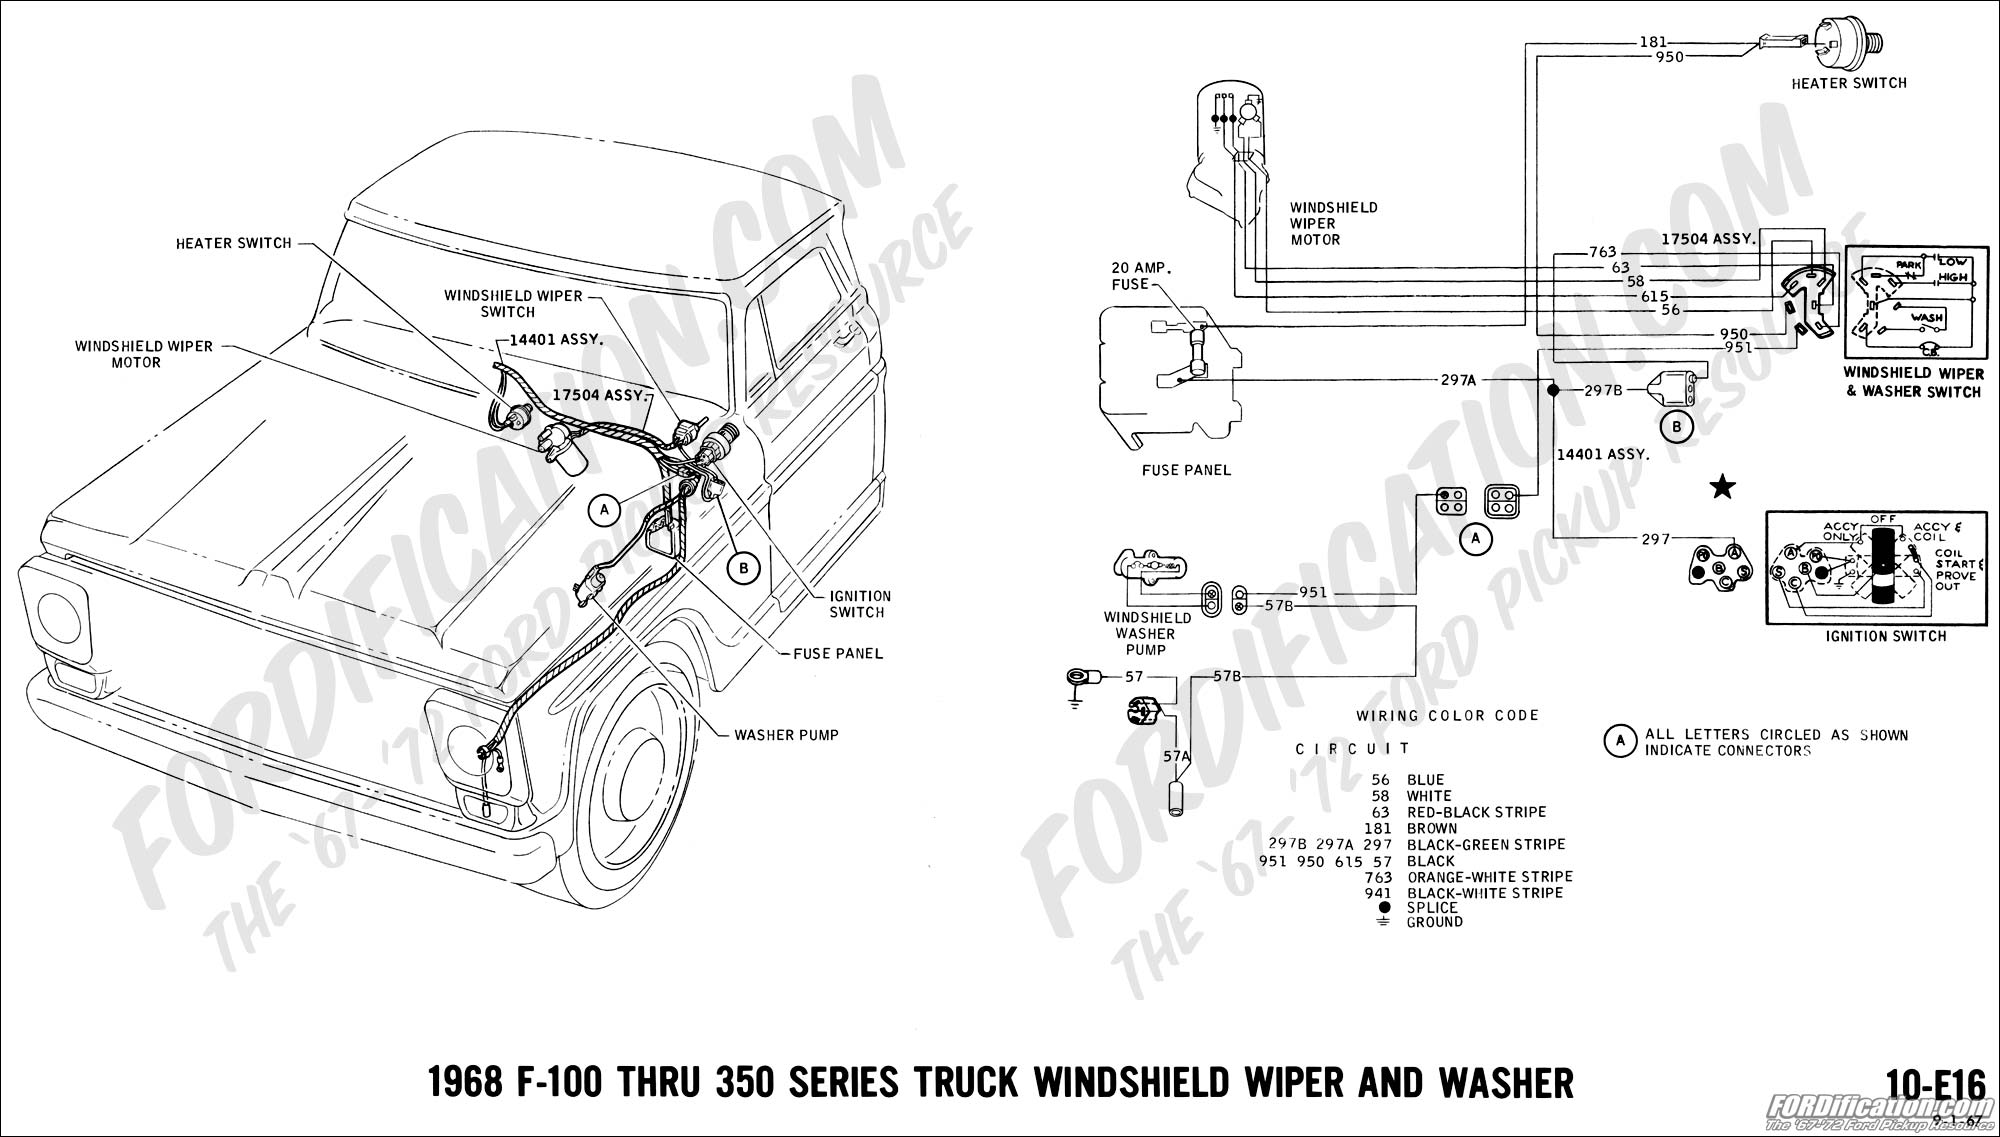 1990 ford f150 wiper motor wiring diagram 120 240 volt truck technical drawings and schematics section h